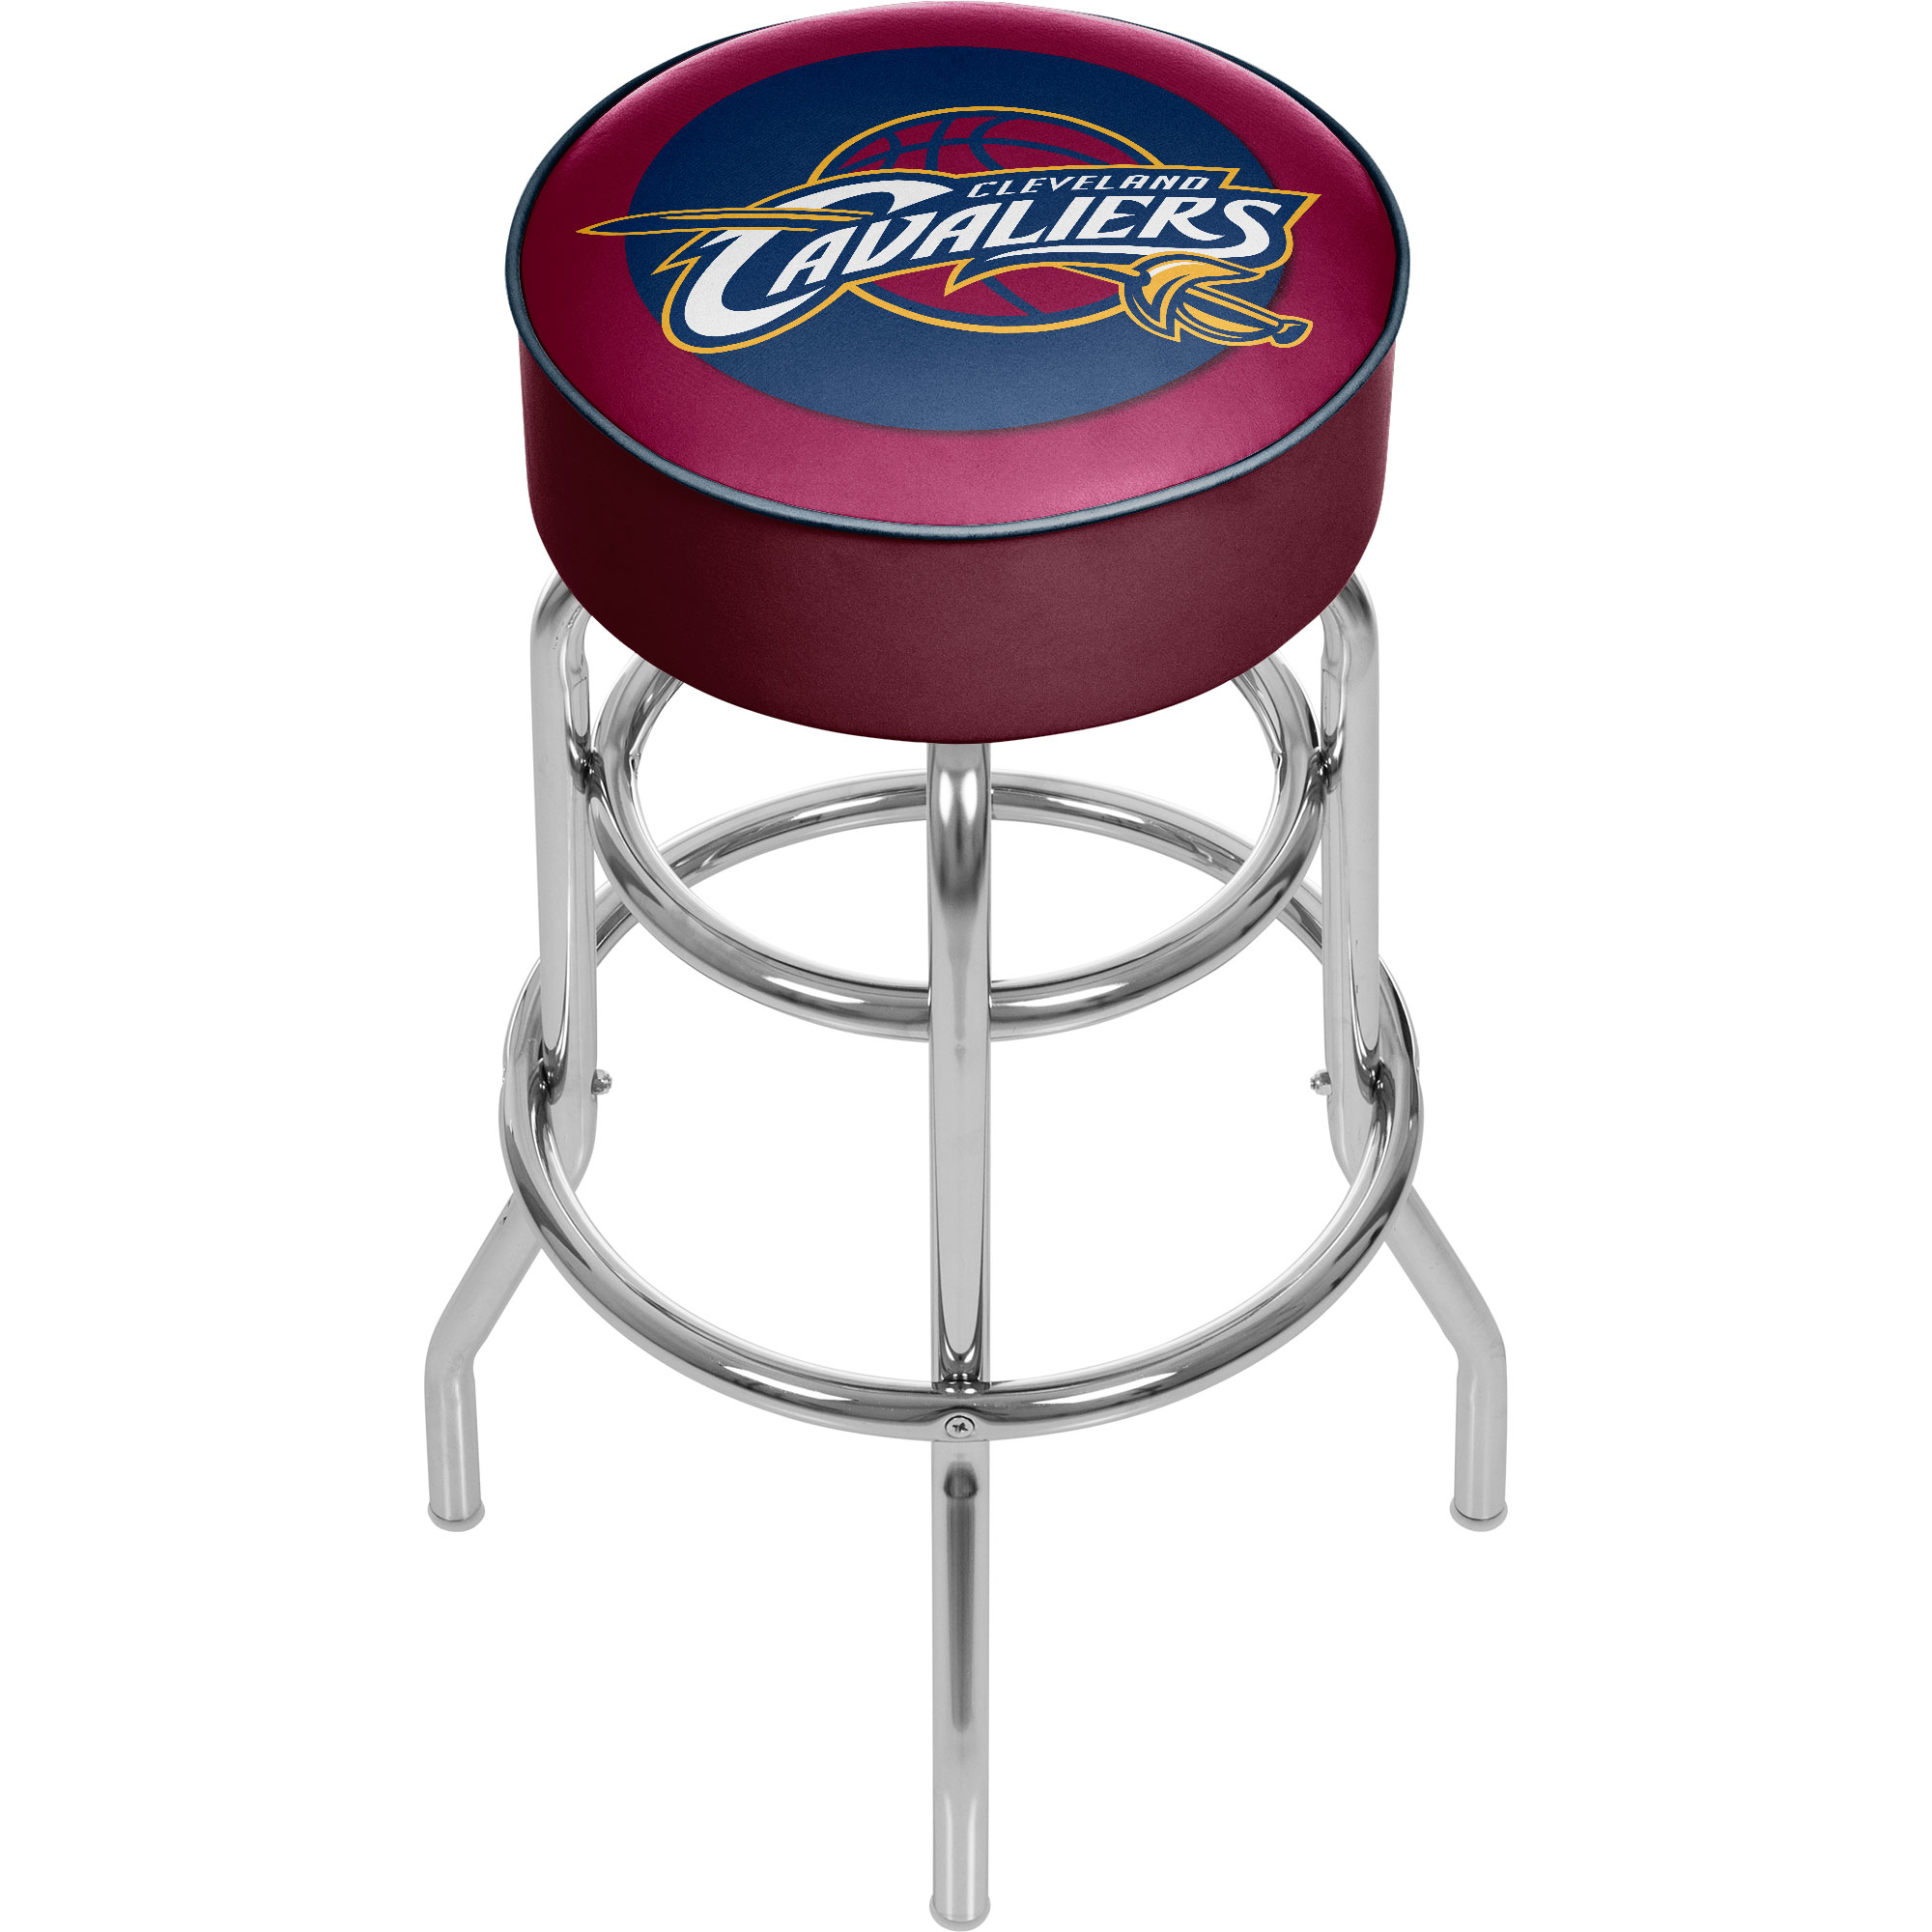 Cleveland Cavaliers NBA Padded Swivel Bar Stool 30 Inches High